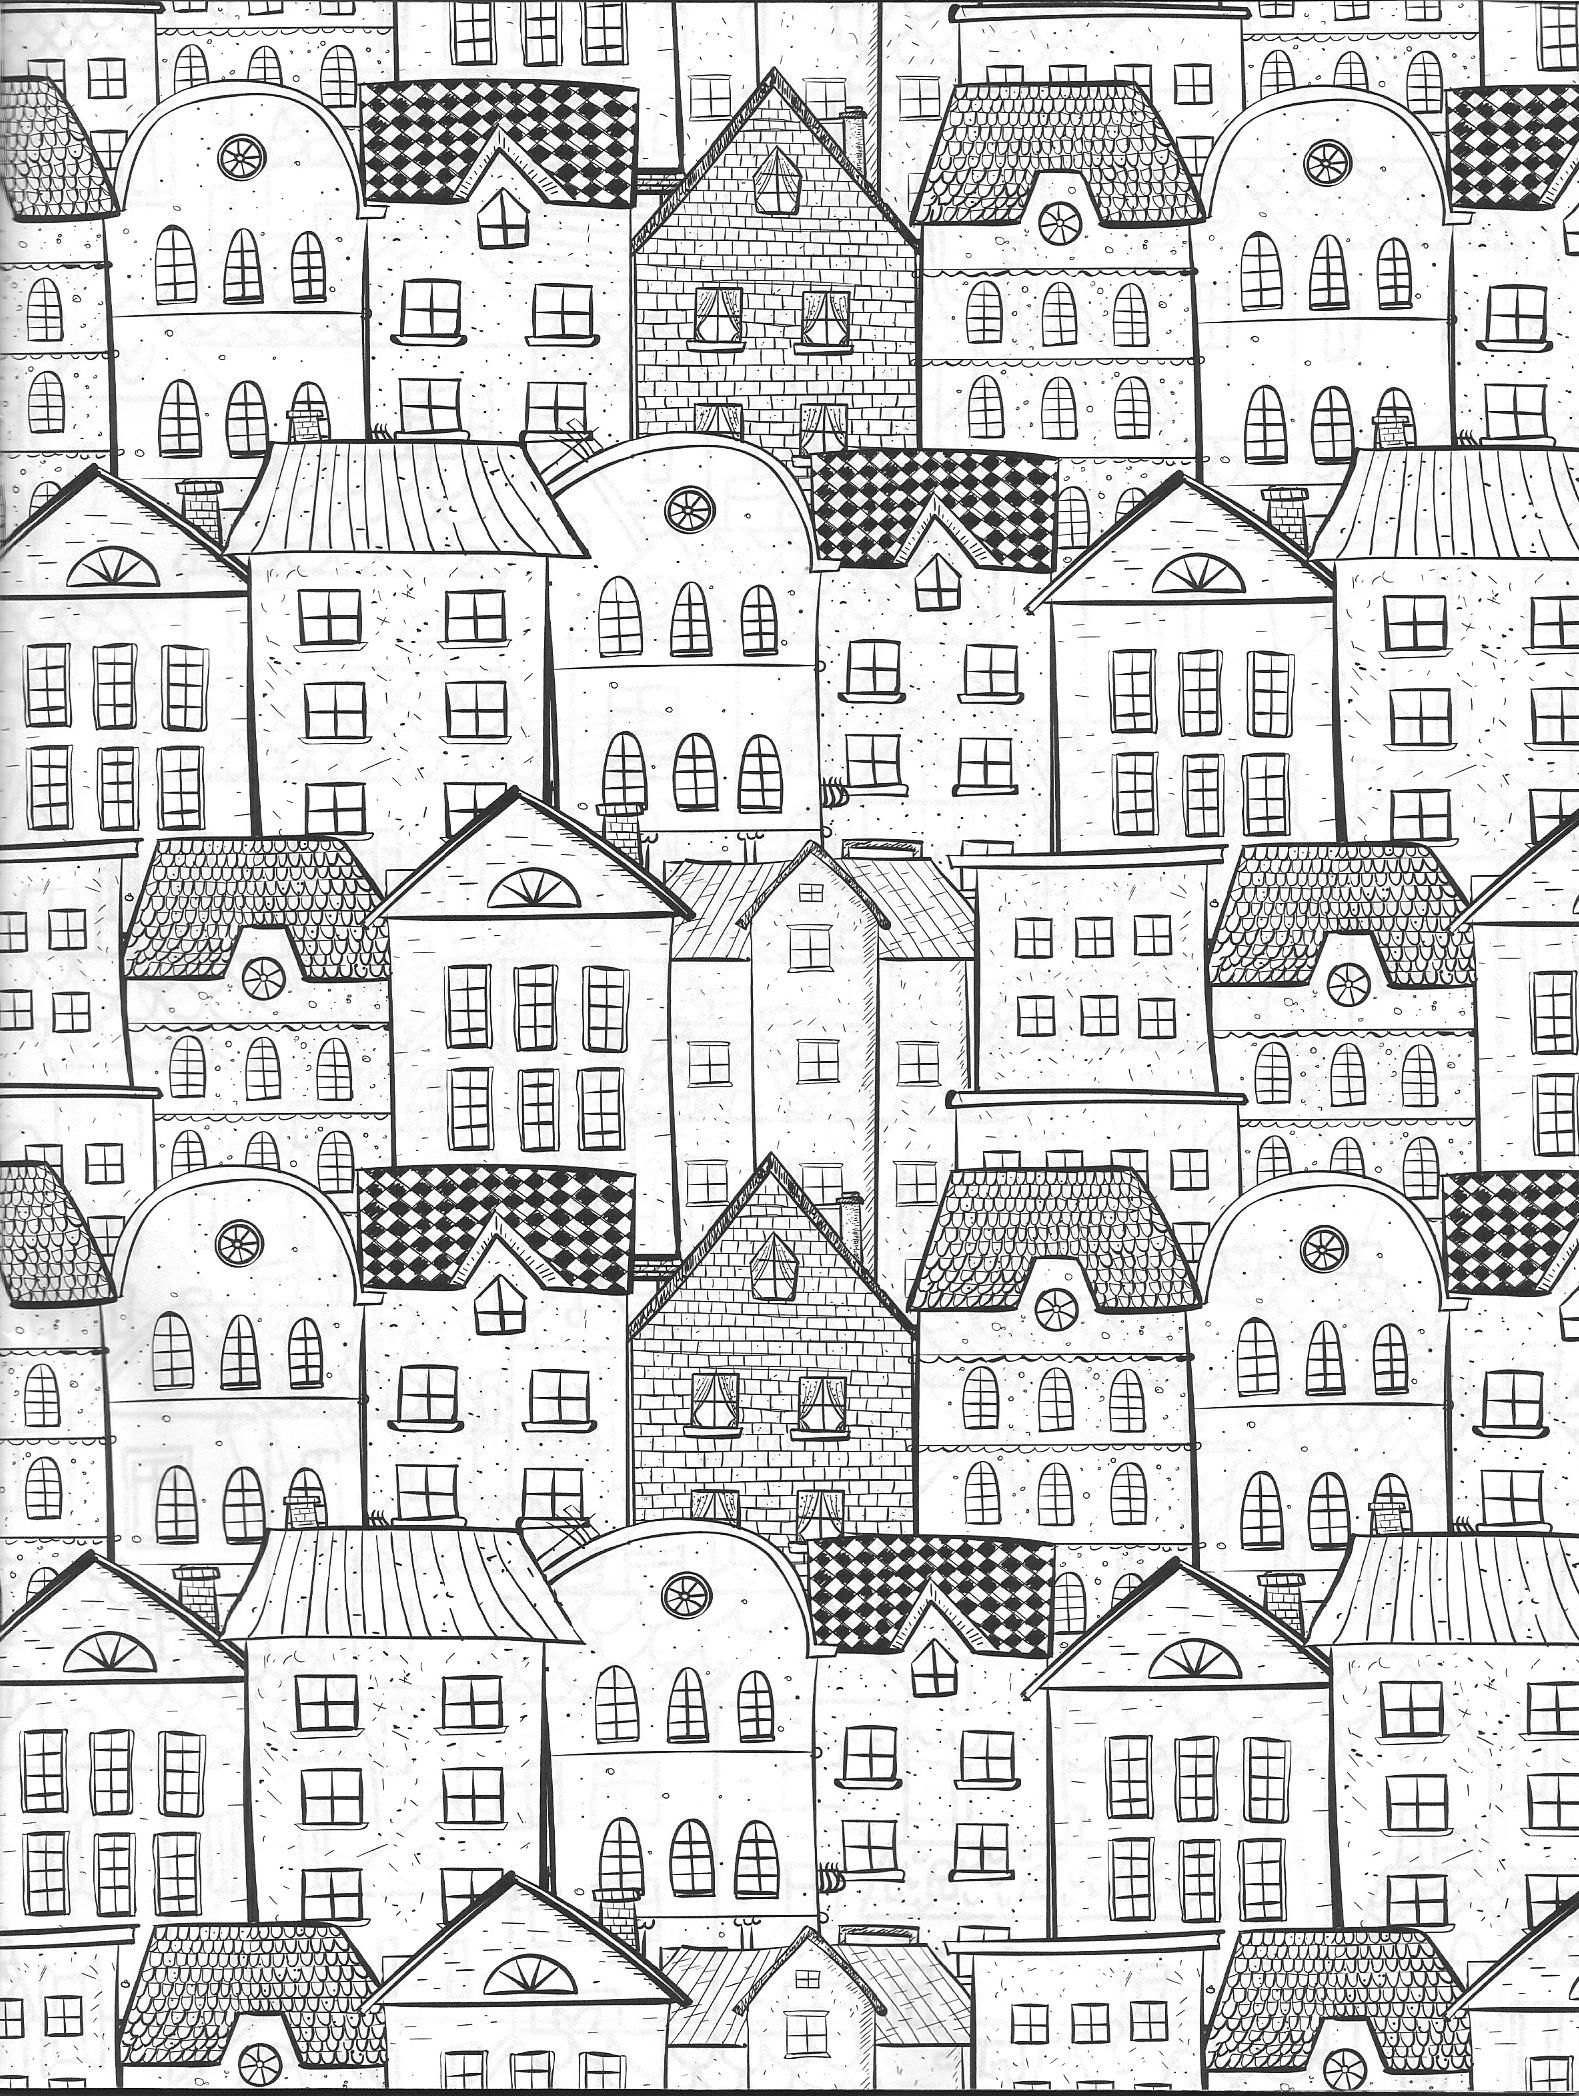 Vida Simples Cidade Dos Sonhos Cityscape Drawing Doodle Art Drawing Colouring Pages